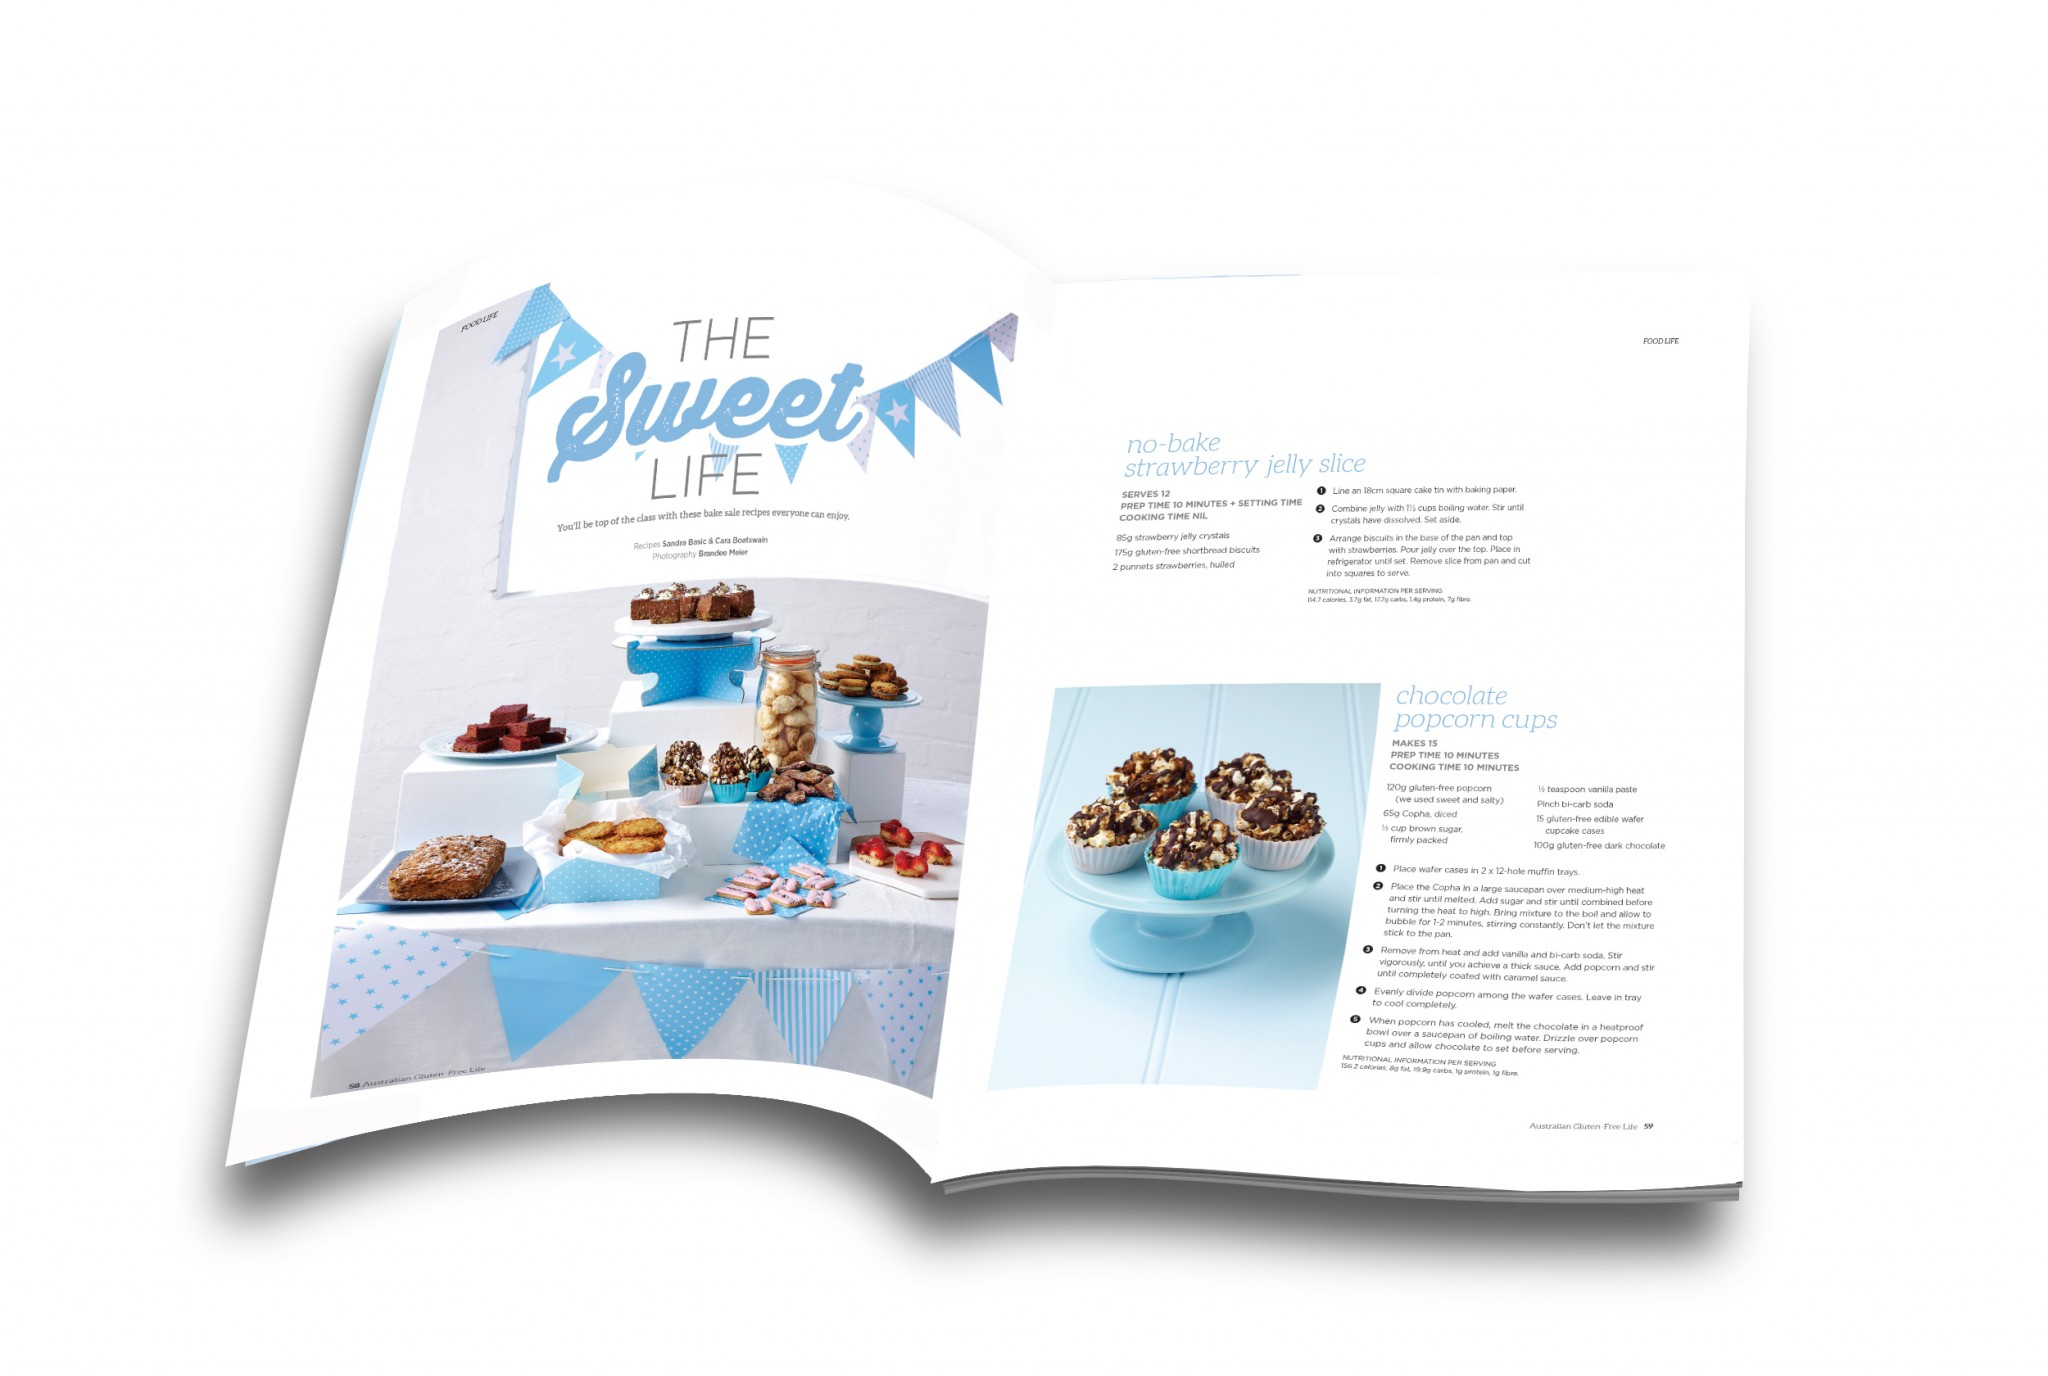 Issue 10 of Gluten-Free Life magazine now available.